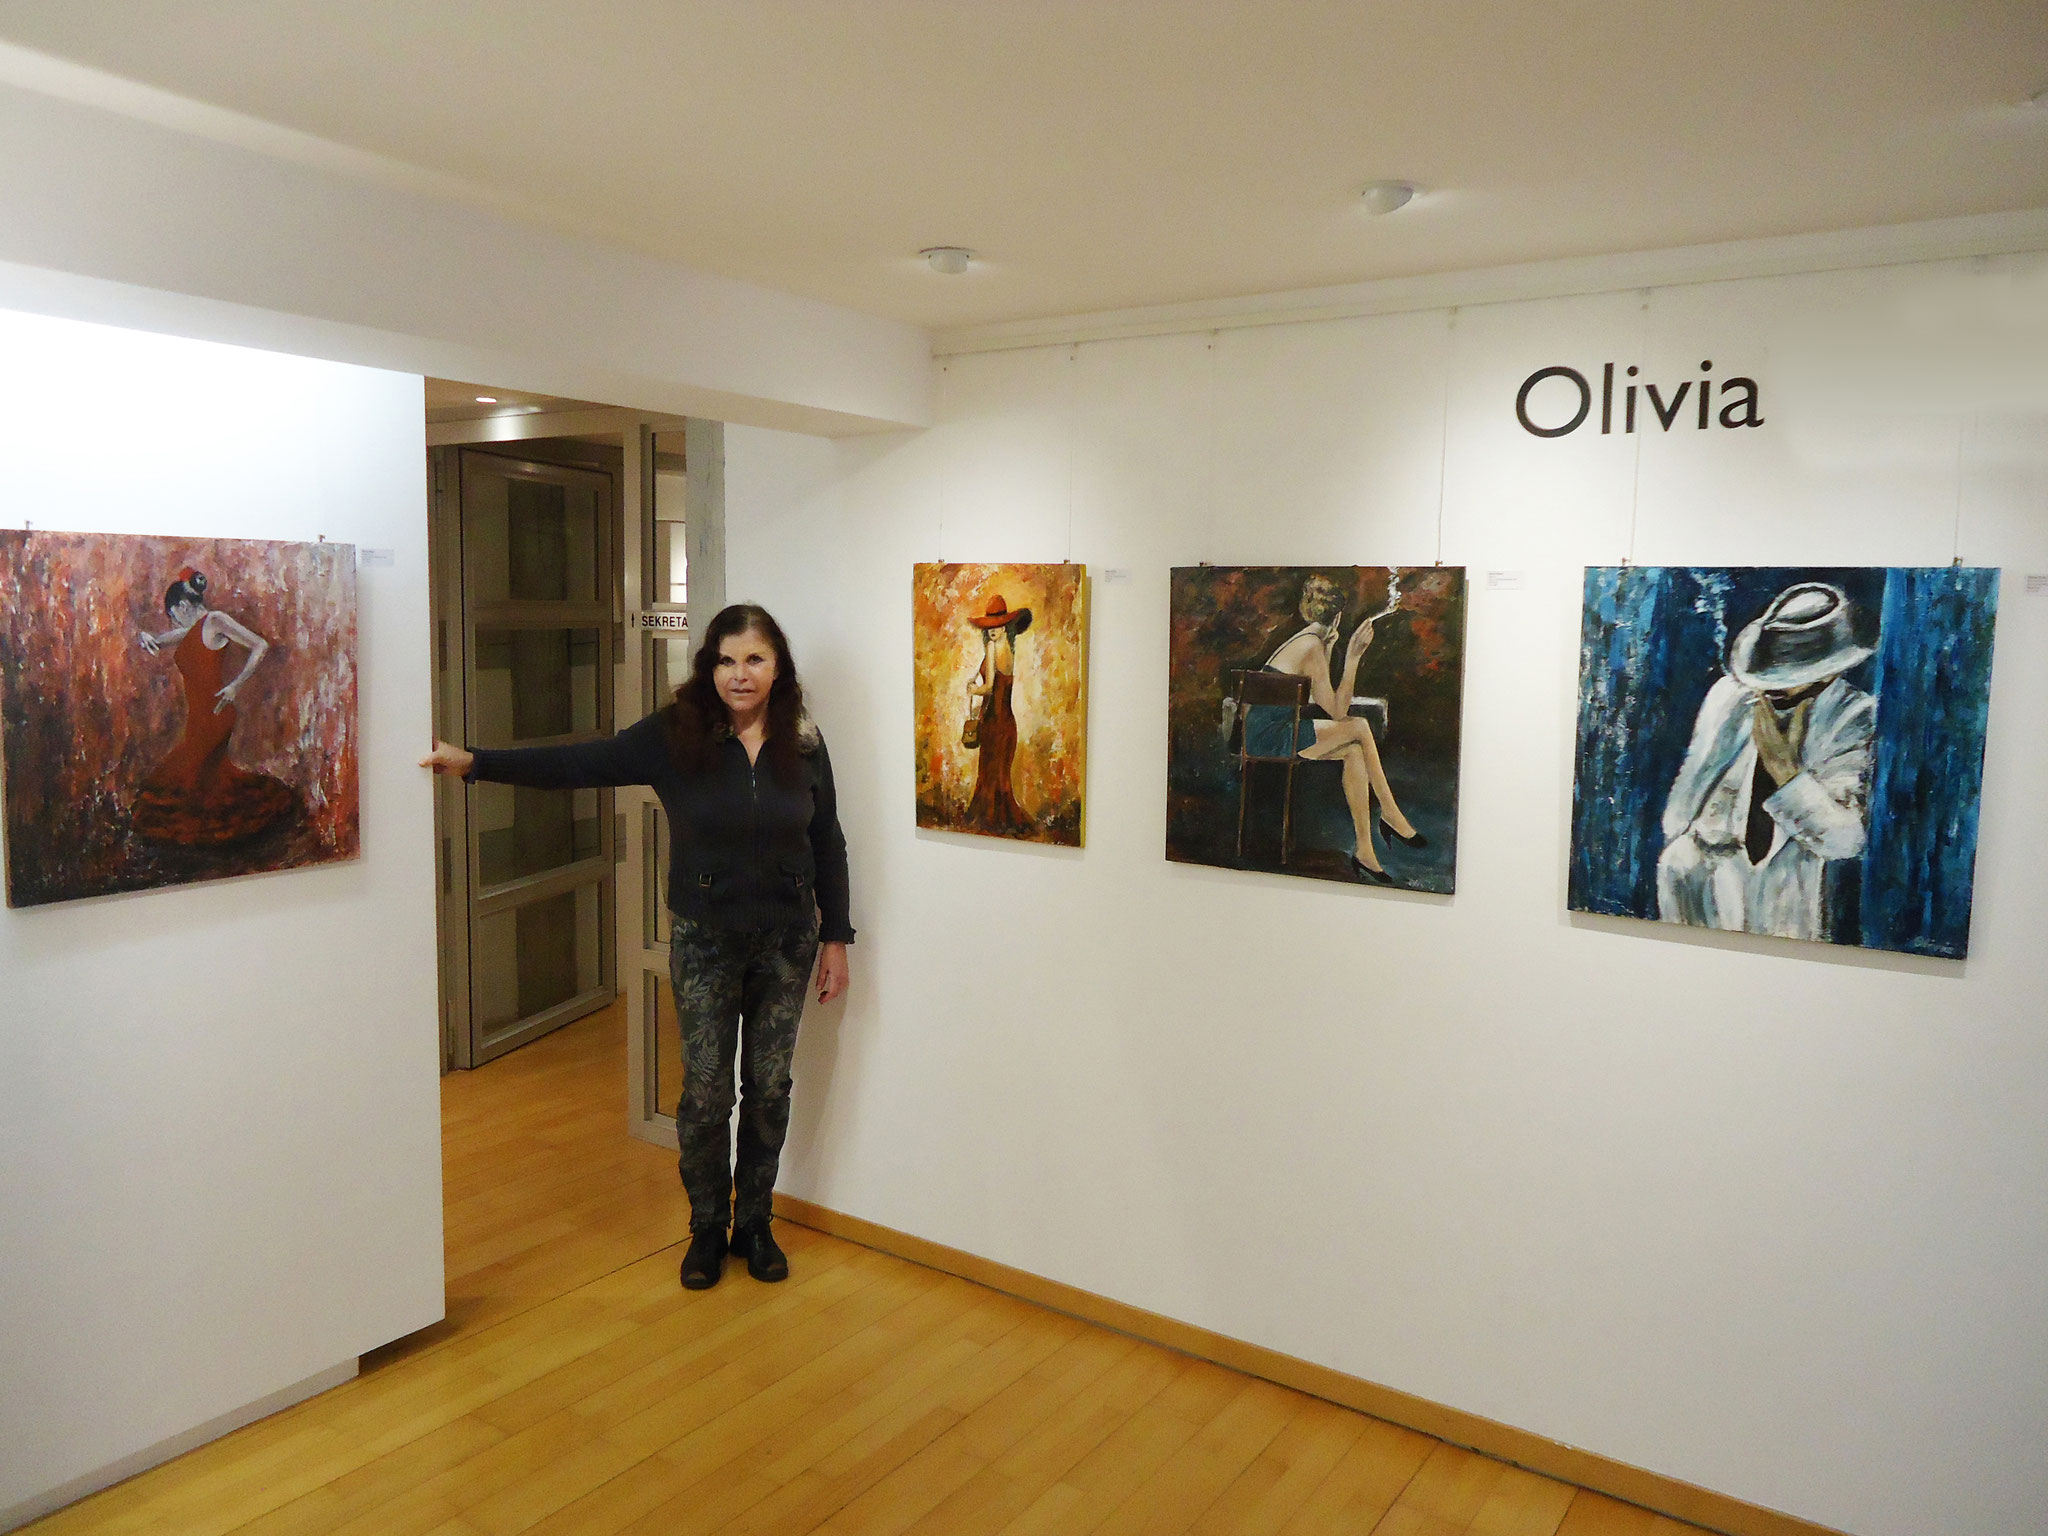 With the paintings at Art Forum